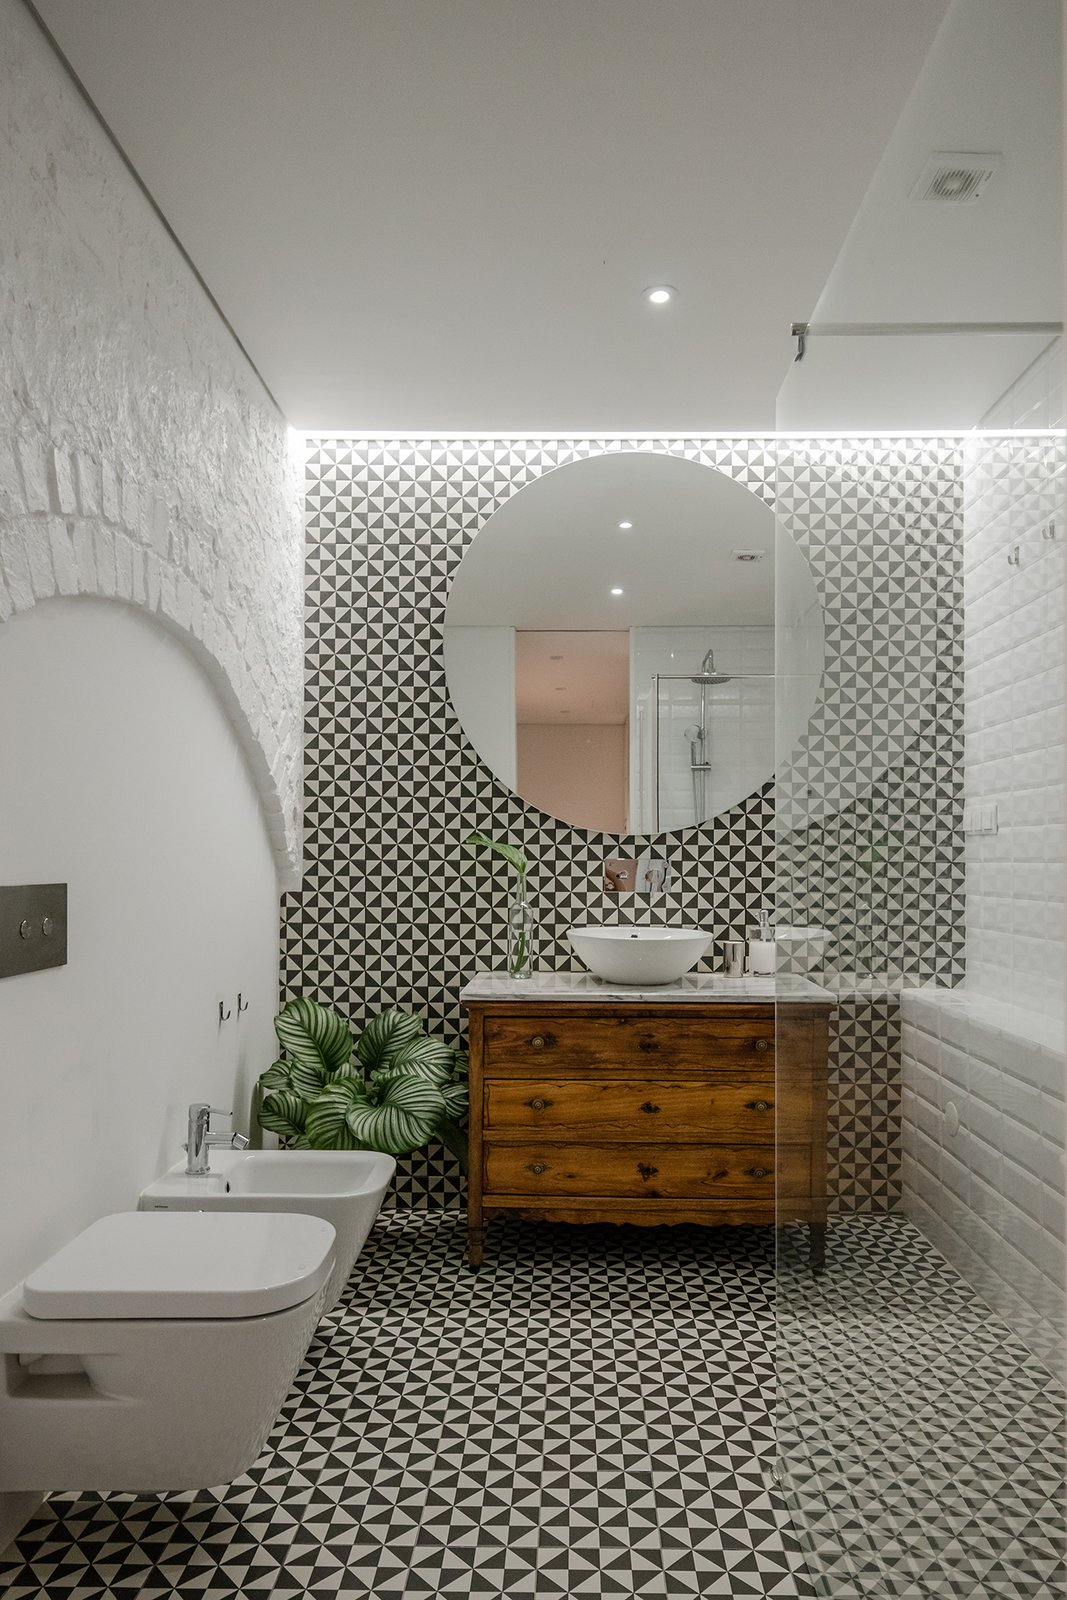 Tagged: Bath Room, Marble Counter, Ceramic Tile Floor, Ceramic Tile Wall, One Piece Toilet, Recessed Lighting, and Vessel Sink.  Rua Maria Loft by KEMA studio